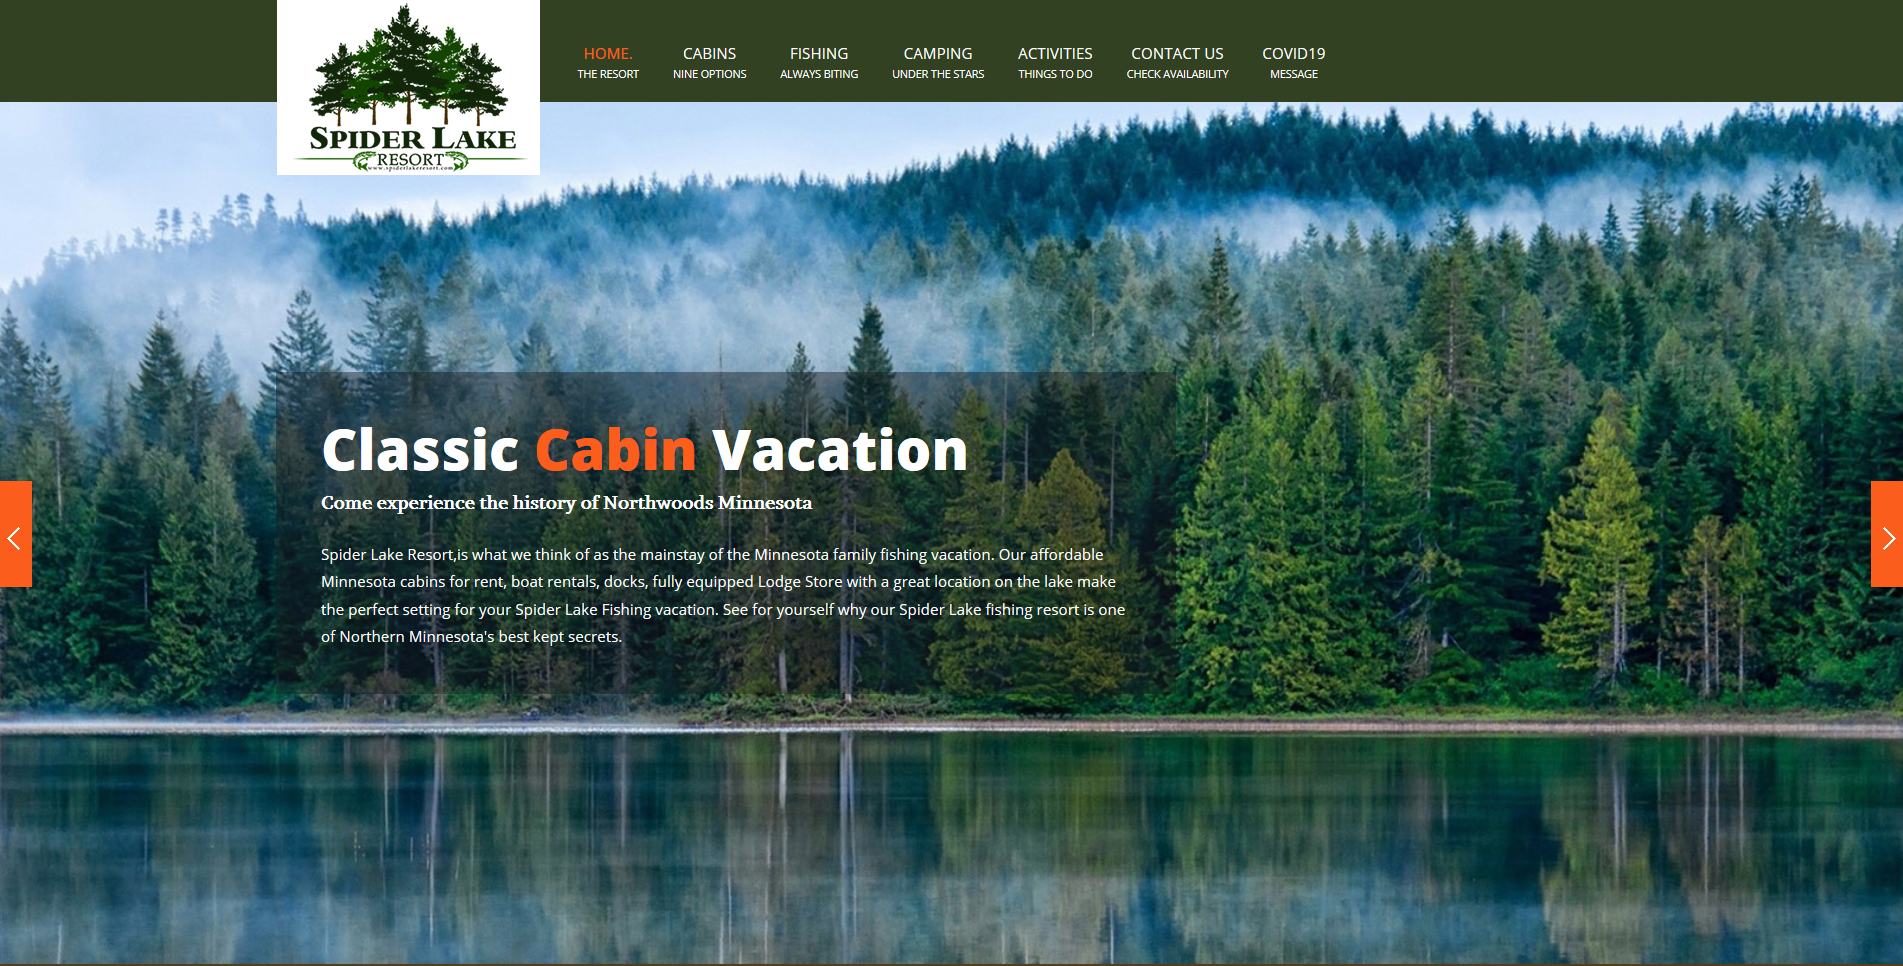 Resort web design by Big Groovy Designs